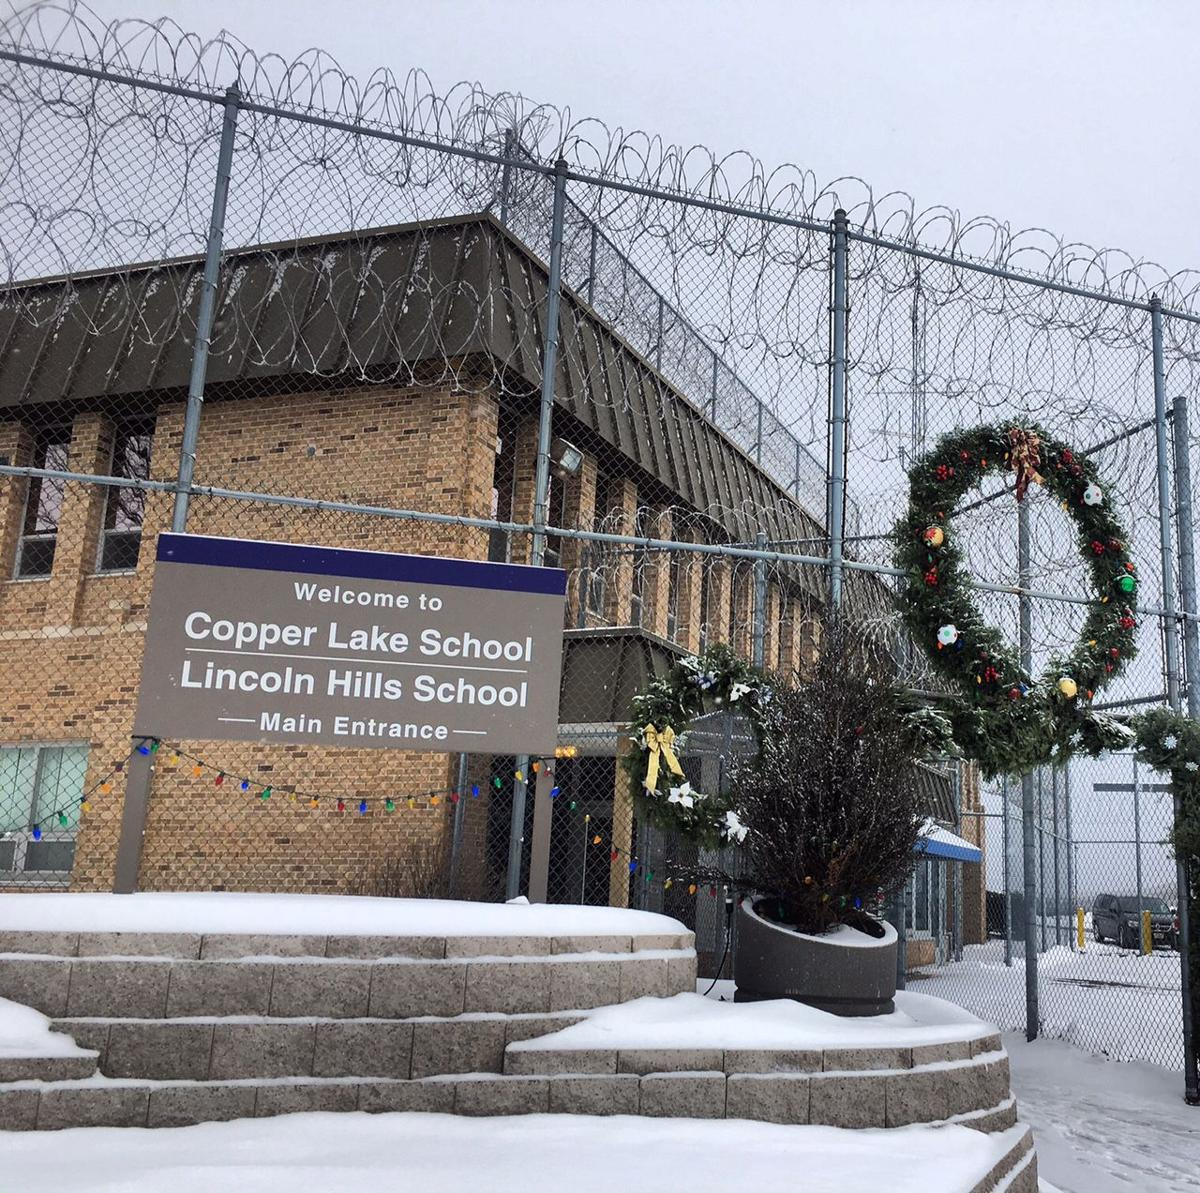 Democratic lawmaker pitches plan to address prison overcrowding, Lincoln Hills